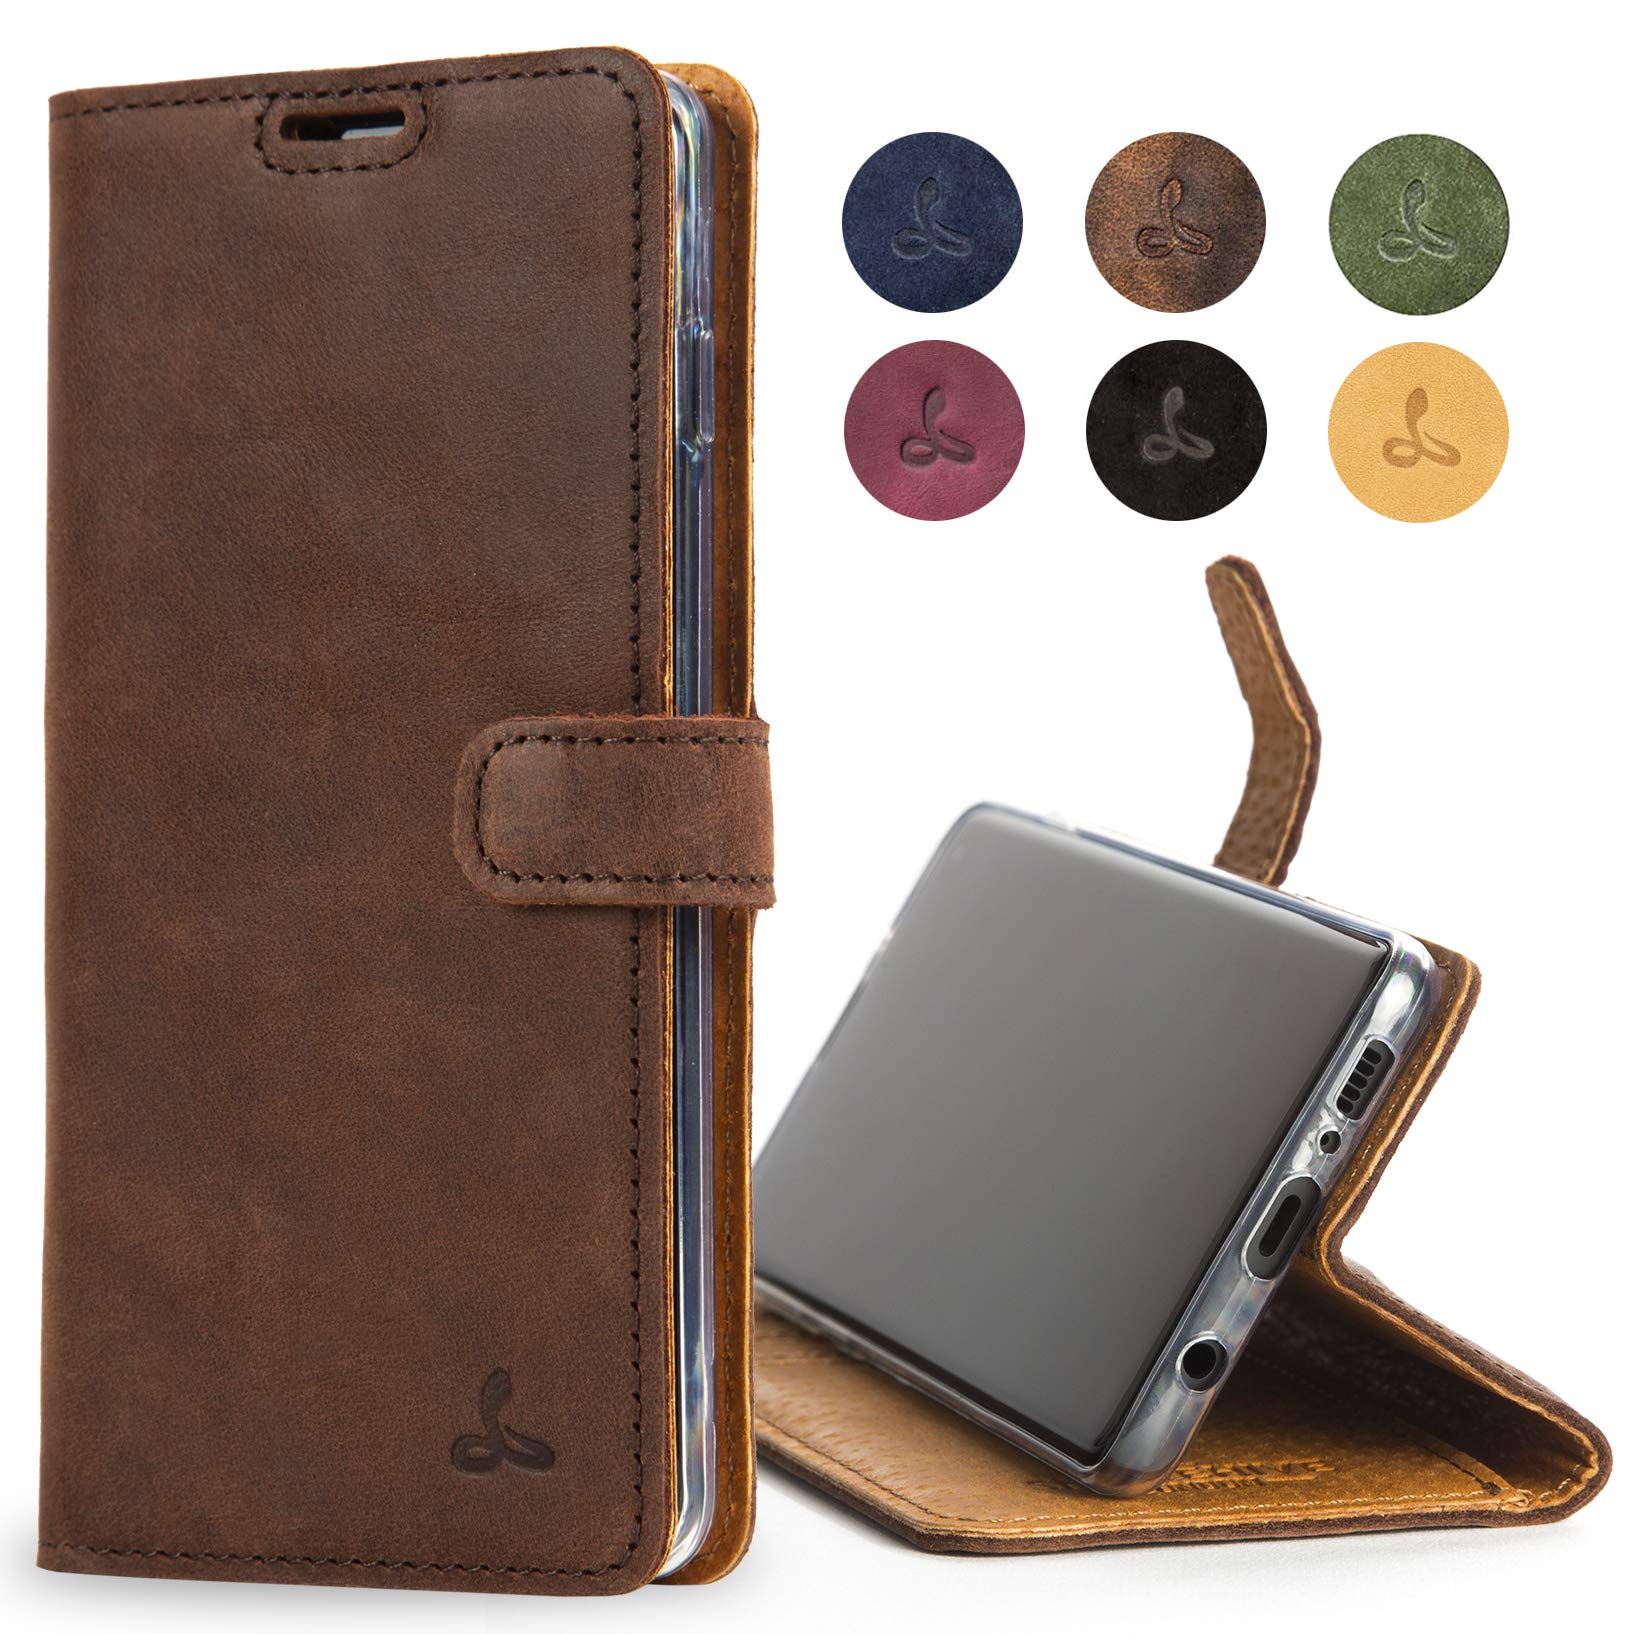 Snakehive Samsung Galaxy S10 Case, Luxury Genuine Leather Wallet with Viewing Stand and Card Slots, Flip Cover Gift Boxed and Handmade in Europe for Samsung Galaxy S10 - (Brown)